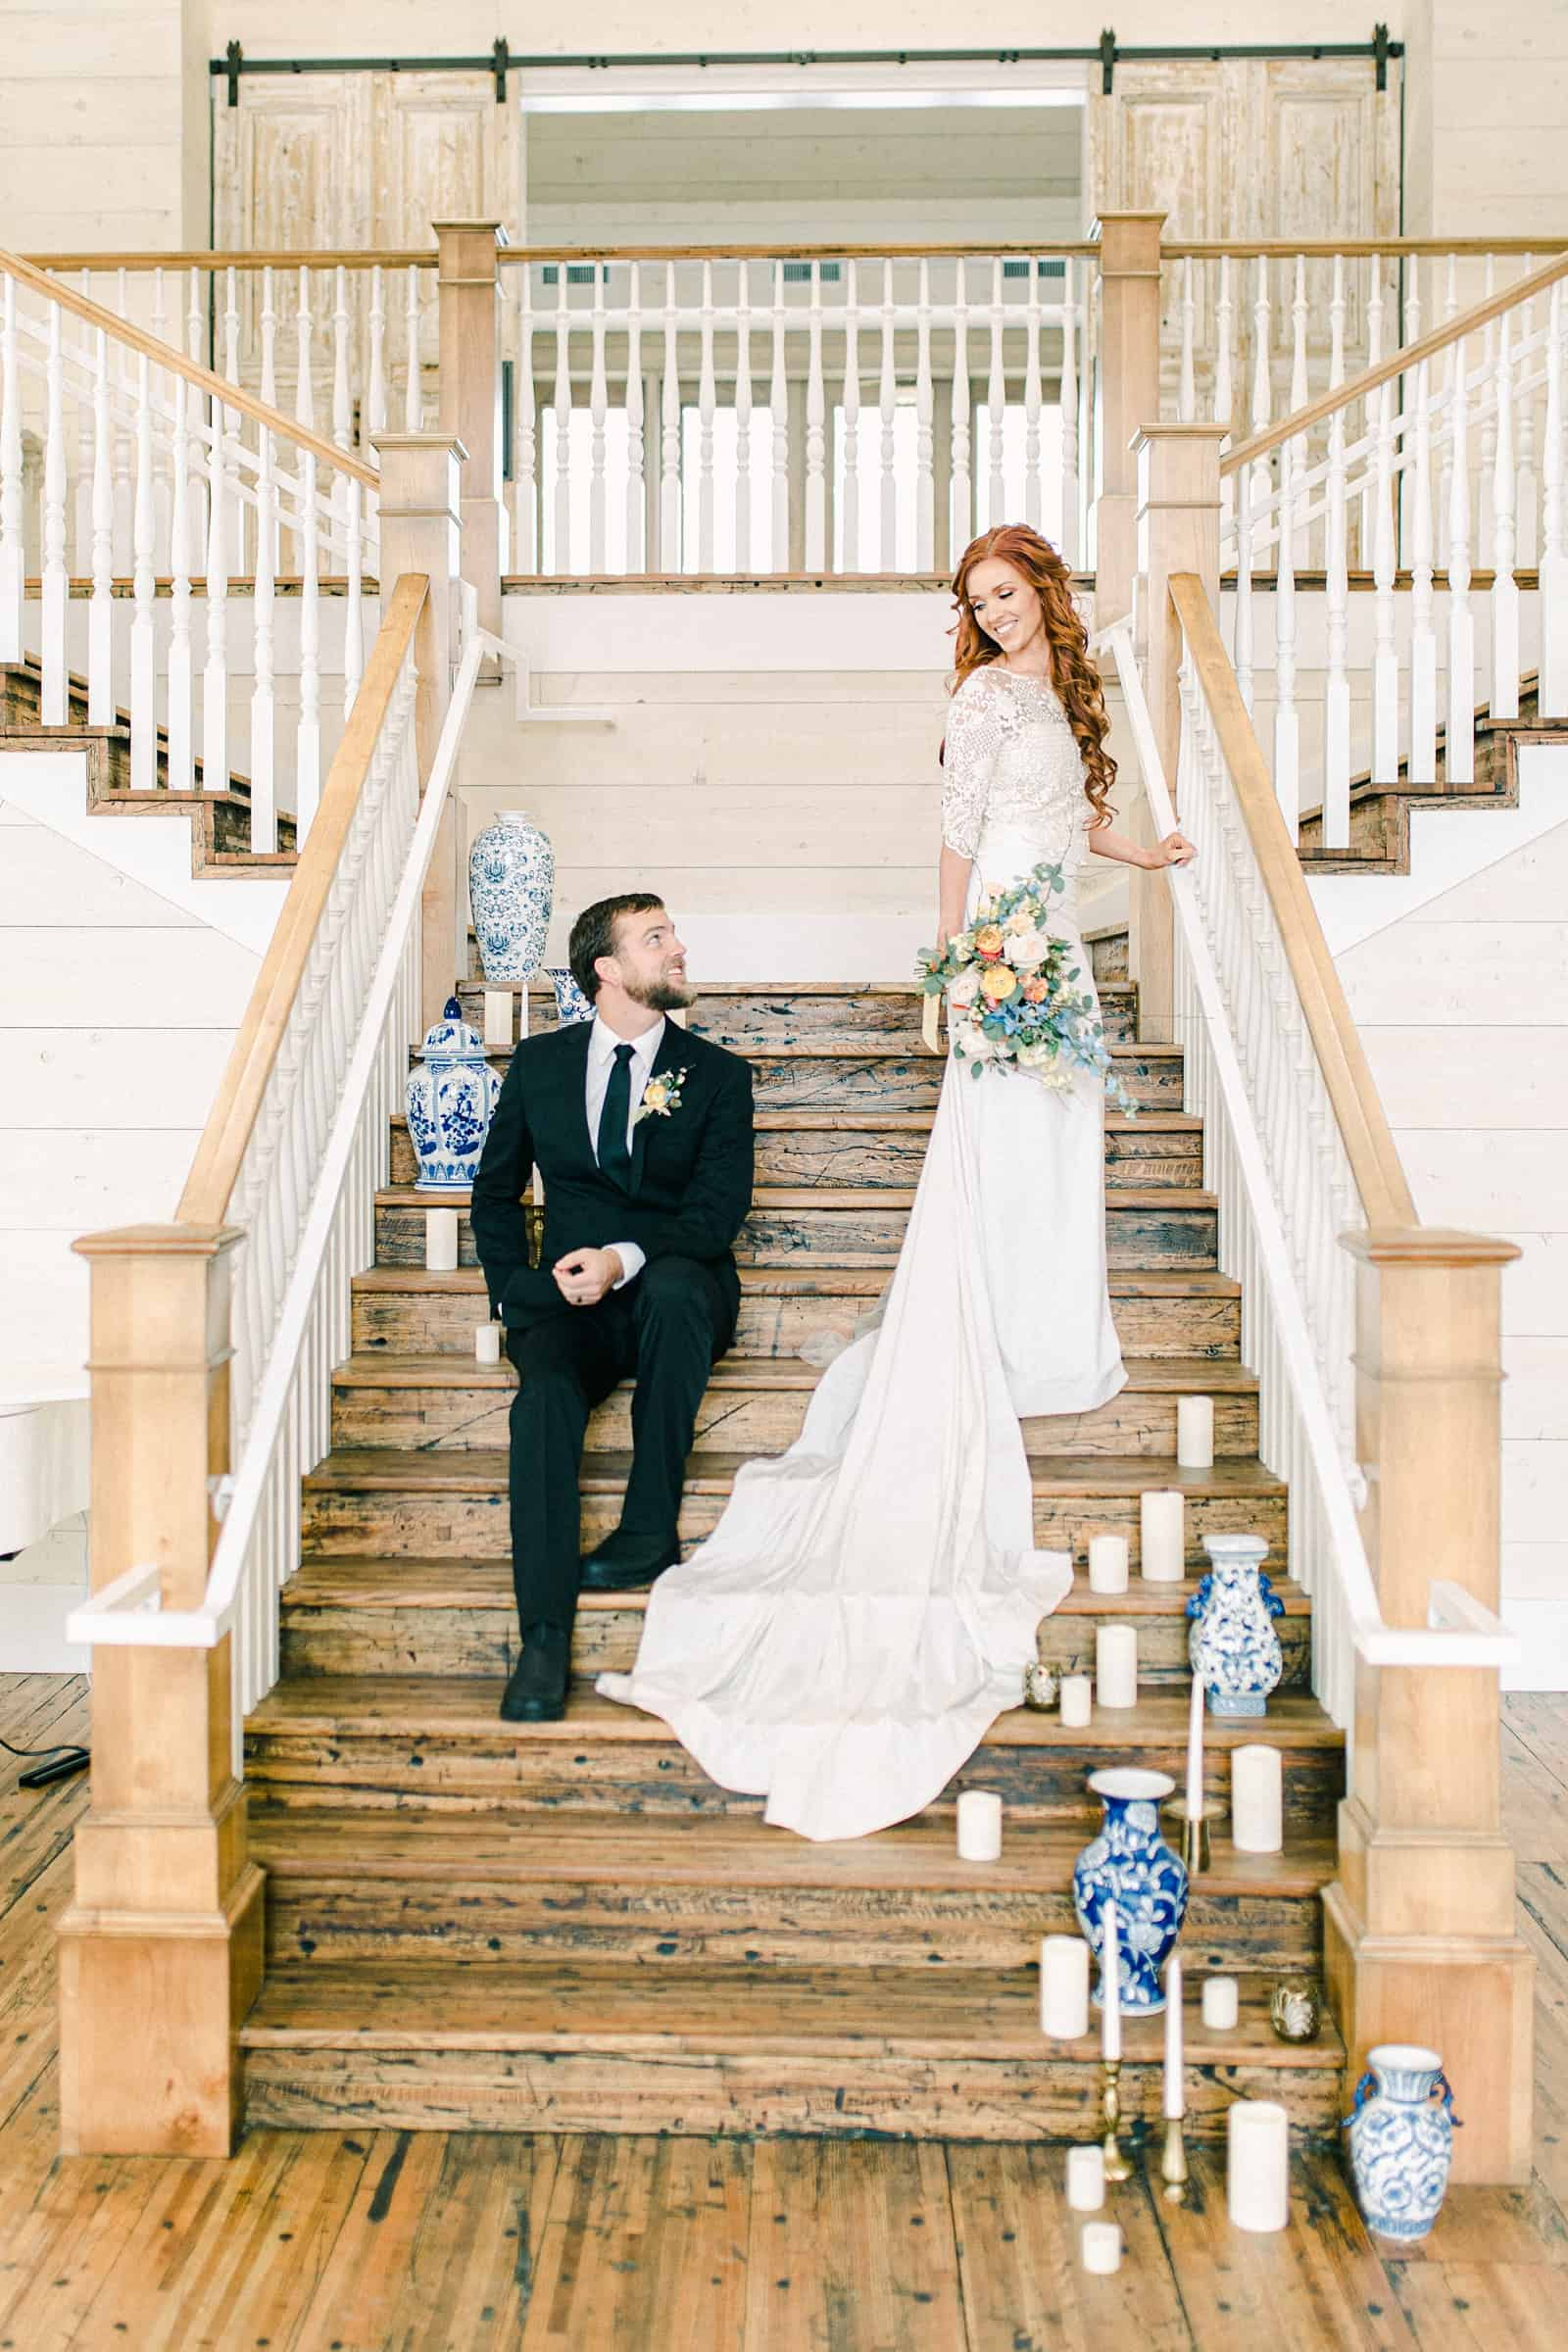 Bride and groom on staircase with vases and candles